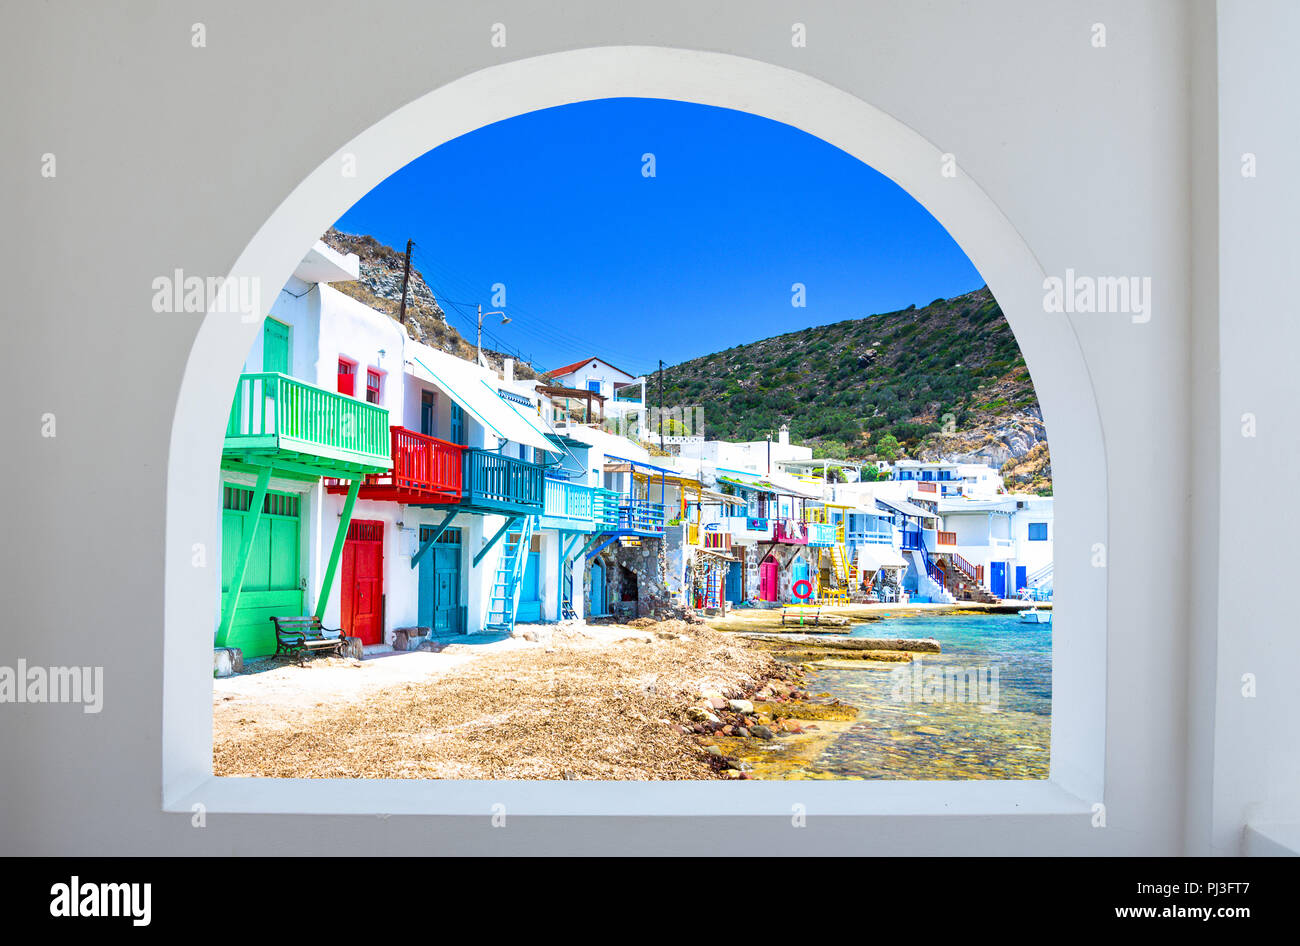 Klima village (traditional Greek village by the sea, the Cycladic-style) with sirmata - traditional fishermen's houses, Milos island, Cyclades, Greece - Stock Image